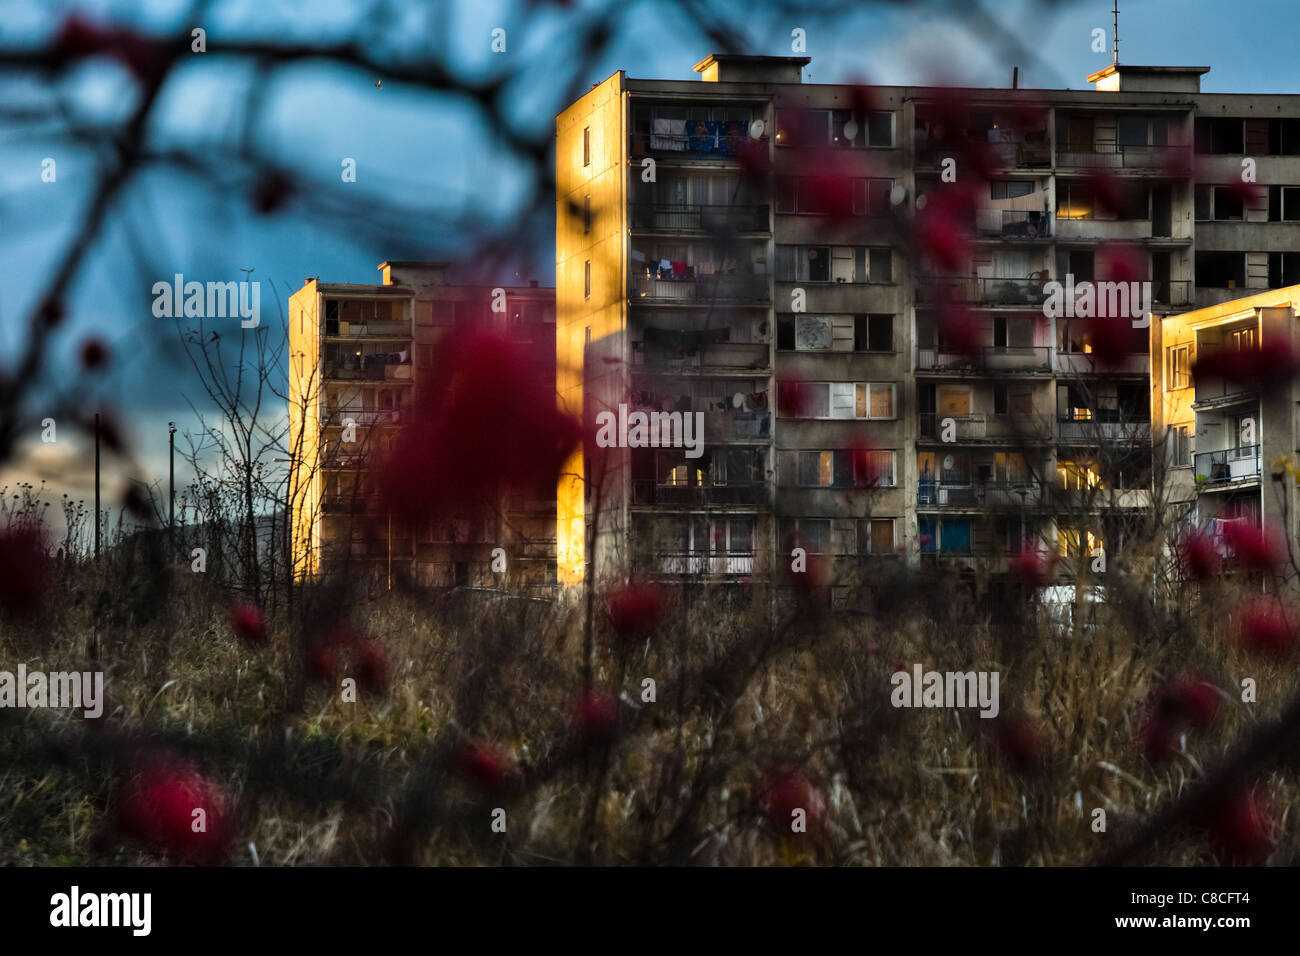 The Gipsy ghetto of Chanov seen through a dog rose bush on outskirts of Most, Czech Republic. - Stock Image